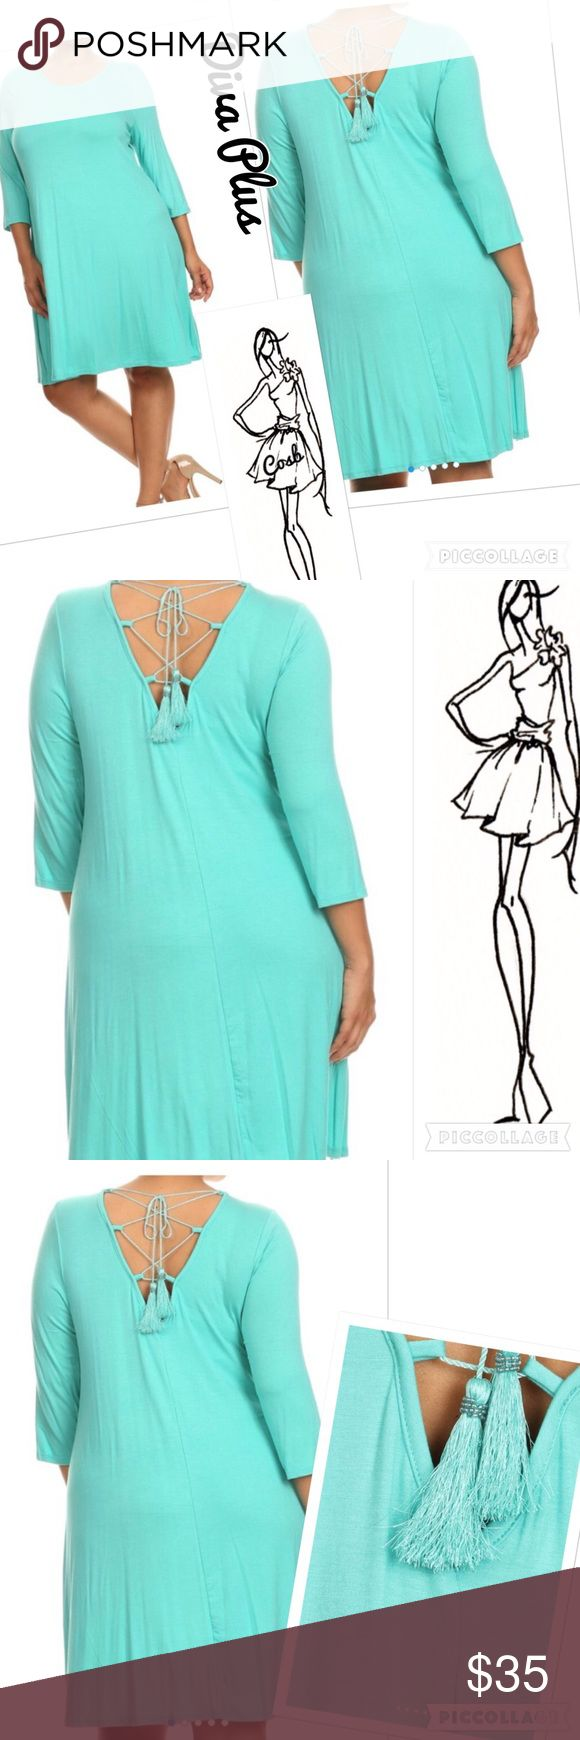 SALE!✨Diva Plus Aqua Dress w/Tassels Diva Plus Aqua Color Dress. Dress has rounded neck in the front & sleeves stop below elbows. Back of dress has V back with lace up & hanging tassels. Plus size only. ✨Price is firm unless bundled. Cosb Dresses